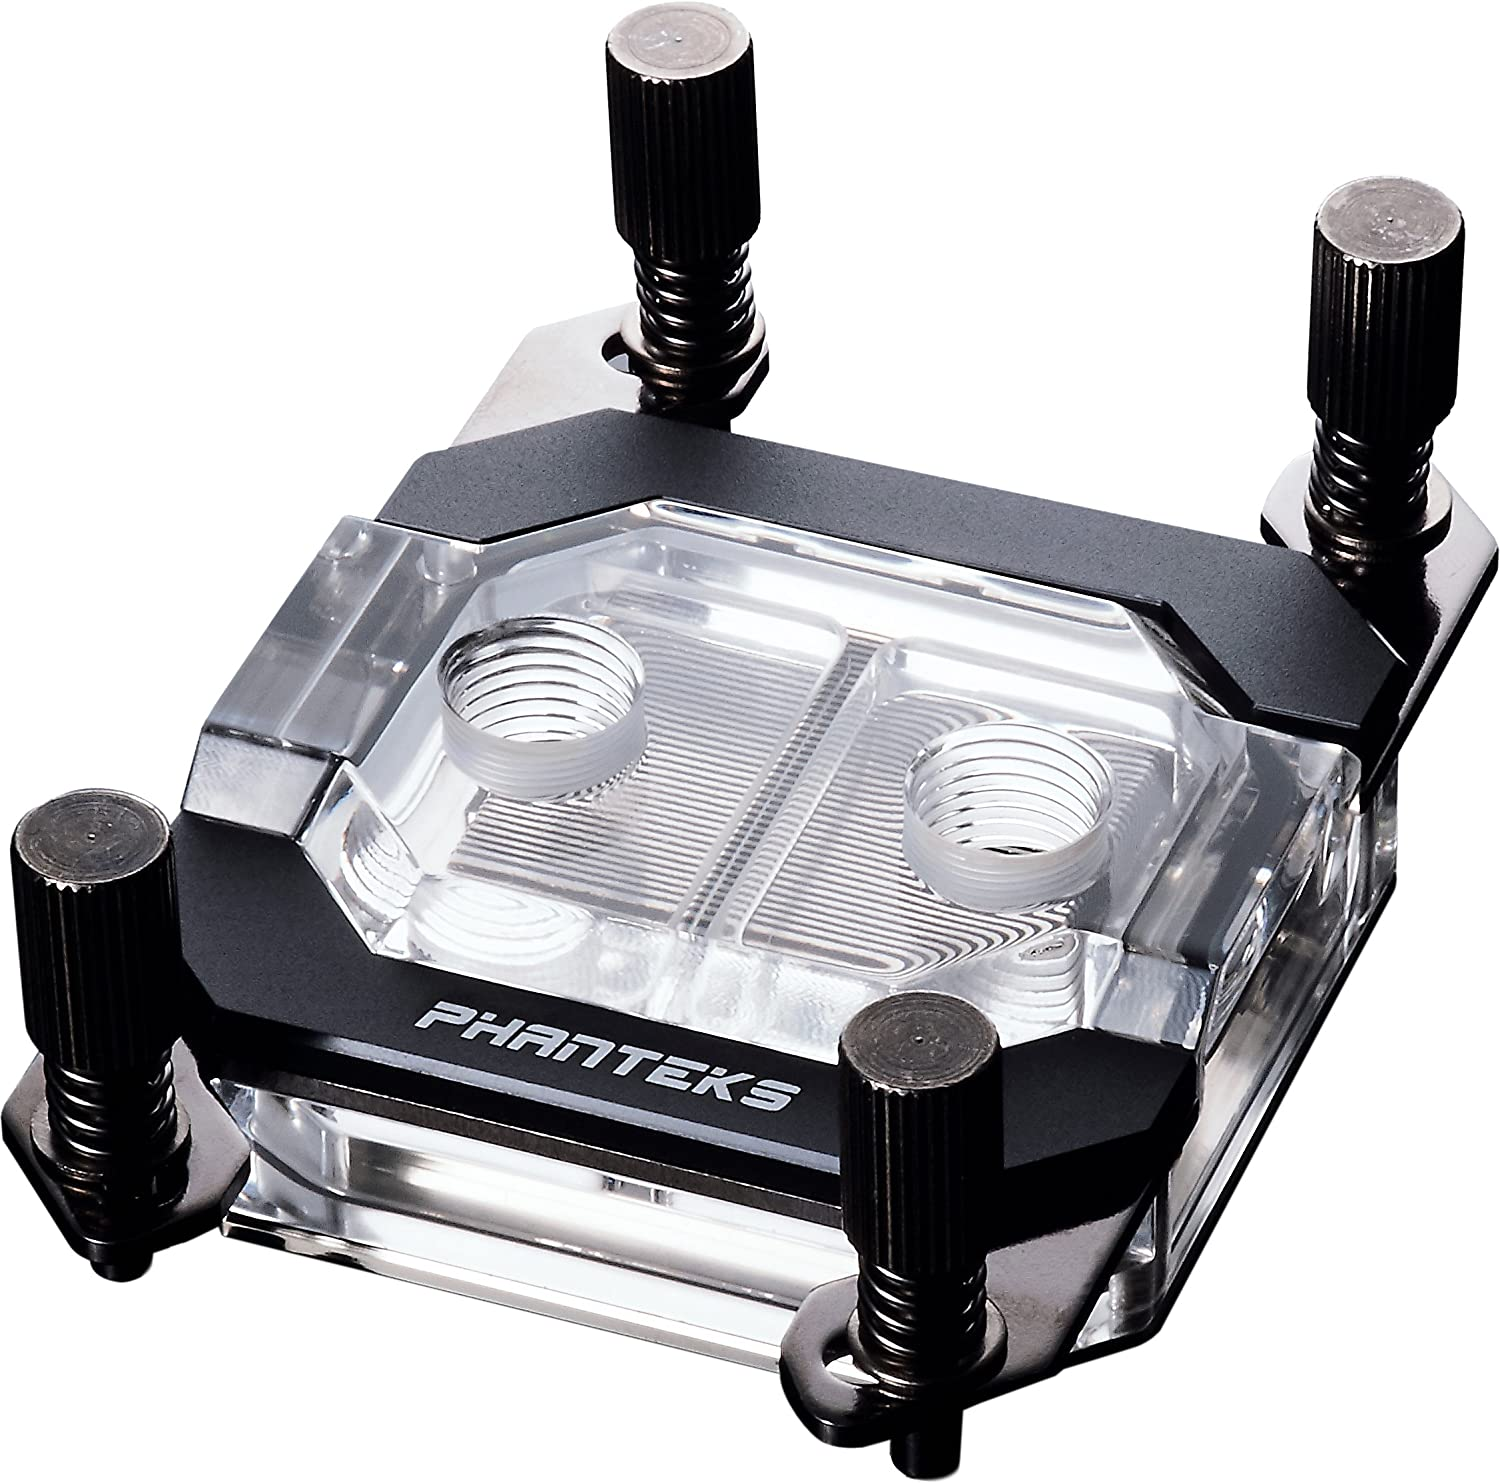 Phanteks PH-C350A_BK01 CPU Water Block LED Copper Base Nickel-Plated Acrylic Aluminum Cover Cooling